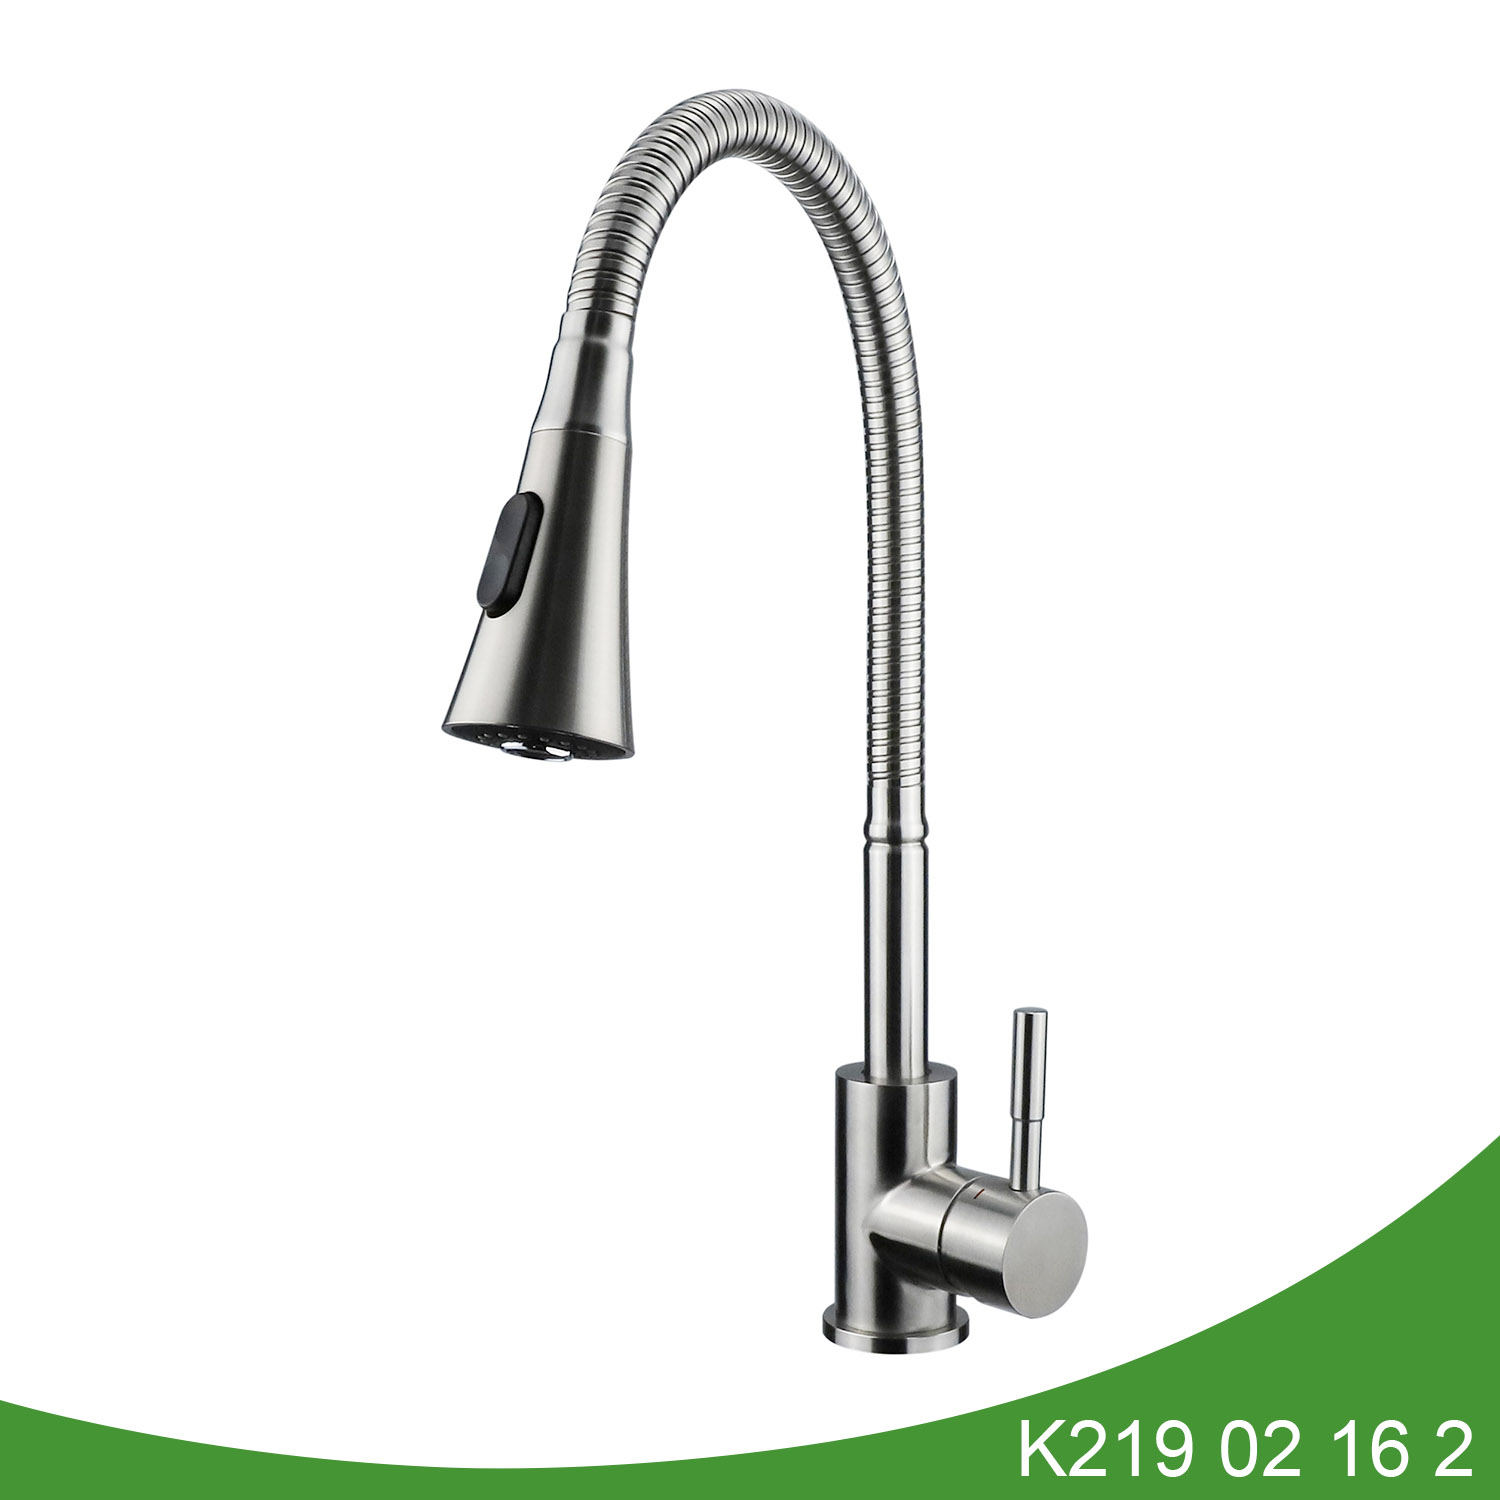 Single handle pull dwon kitchen faucet K219 02 16 2